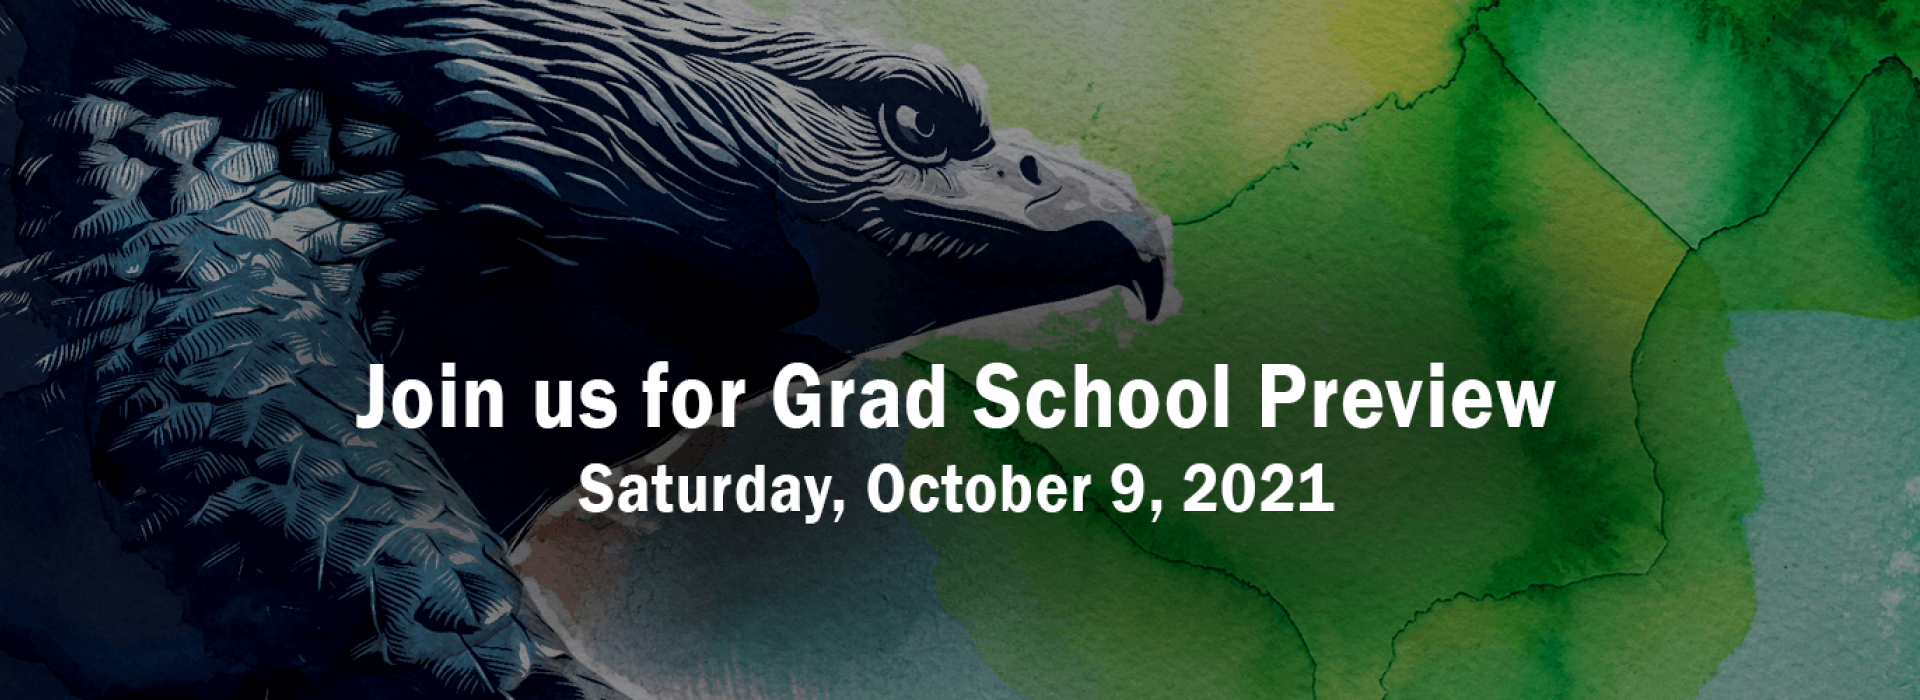 Join us for Grad School Preview, Saturday, October 9, 2021